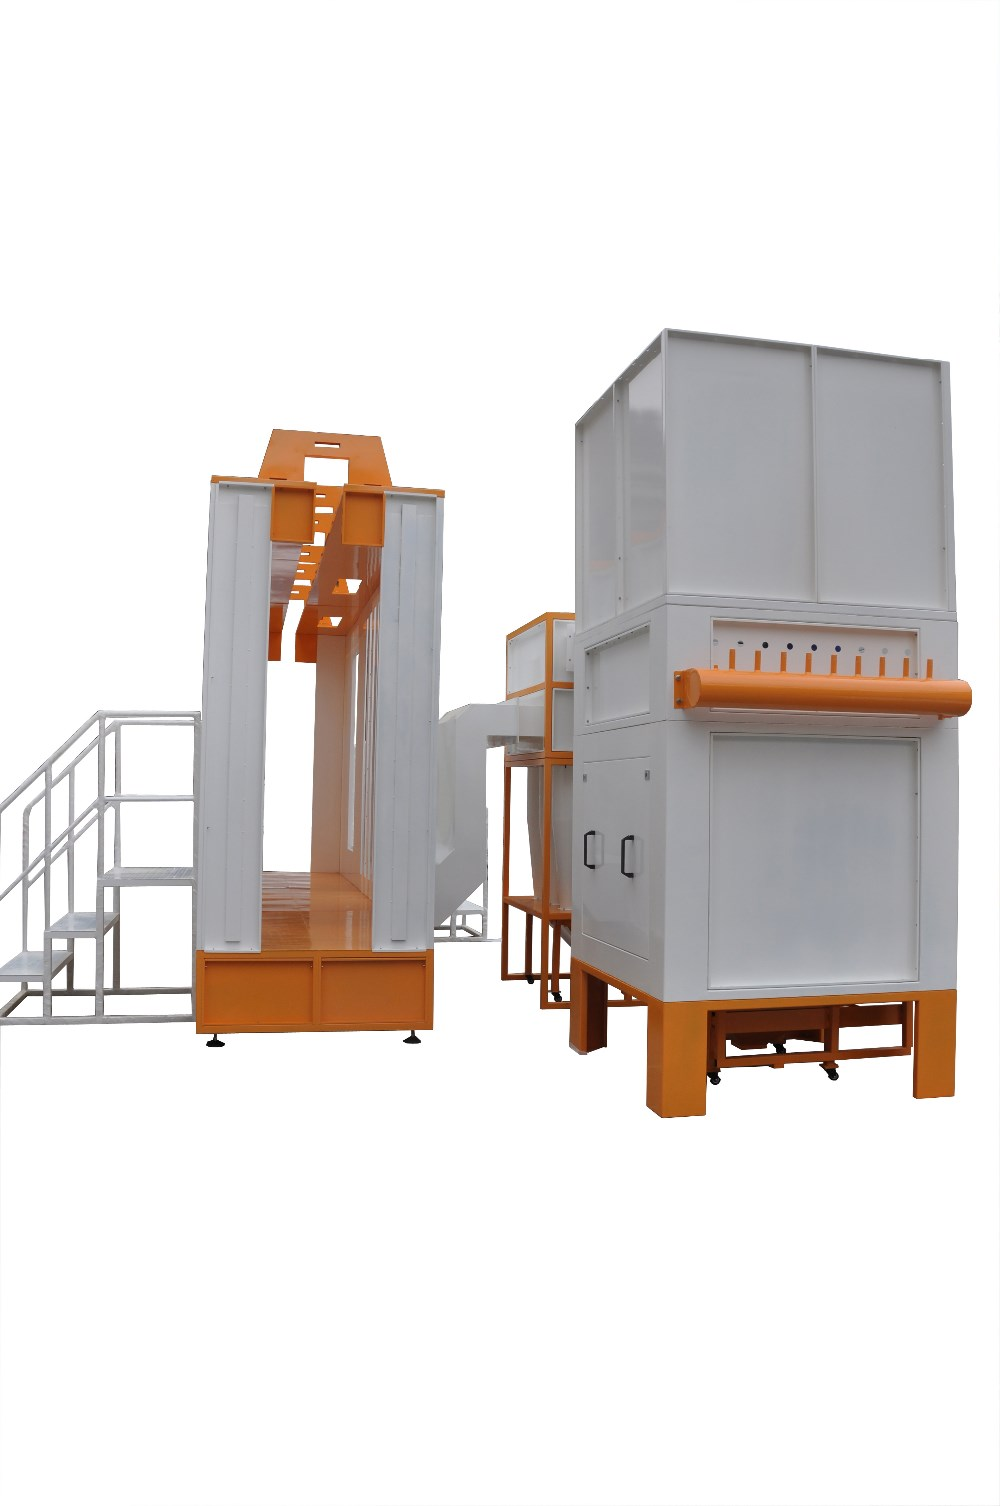 Electrostatic Powder Coating Spray Booth with Multi Cyclone